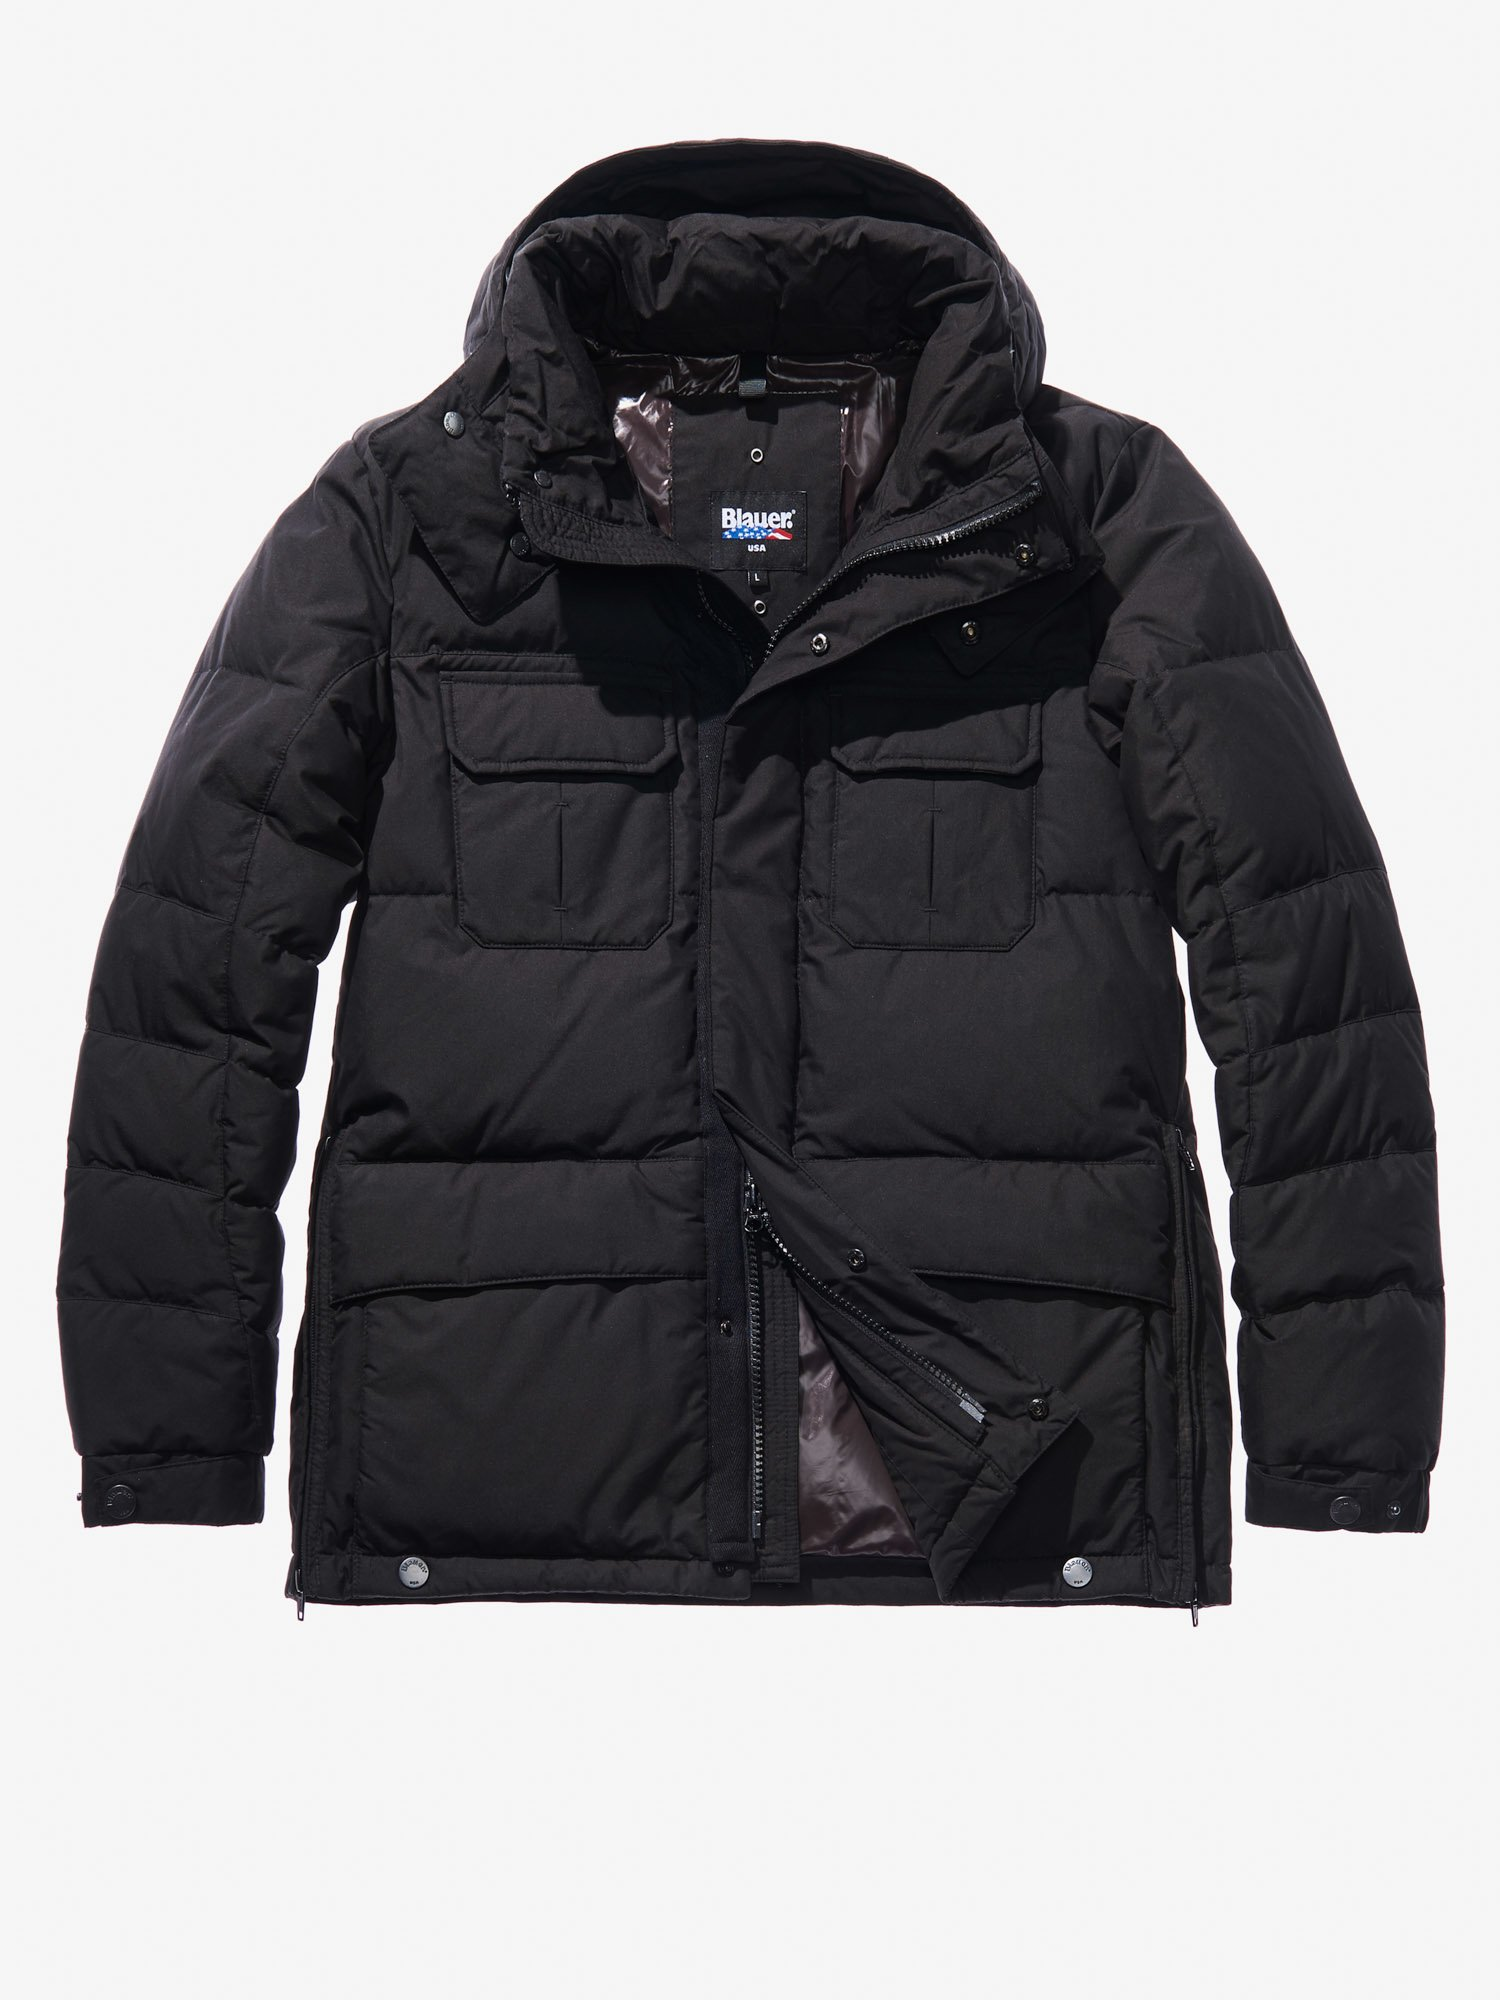 Blauer - GABRIELE COTTON AND NYLON POLICE-STYLE DOWN COAT - Black - Blauer